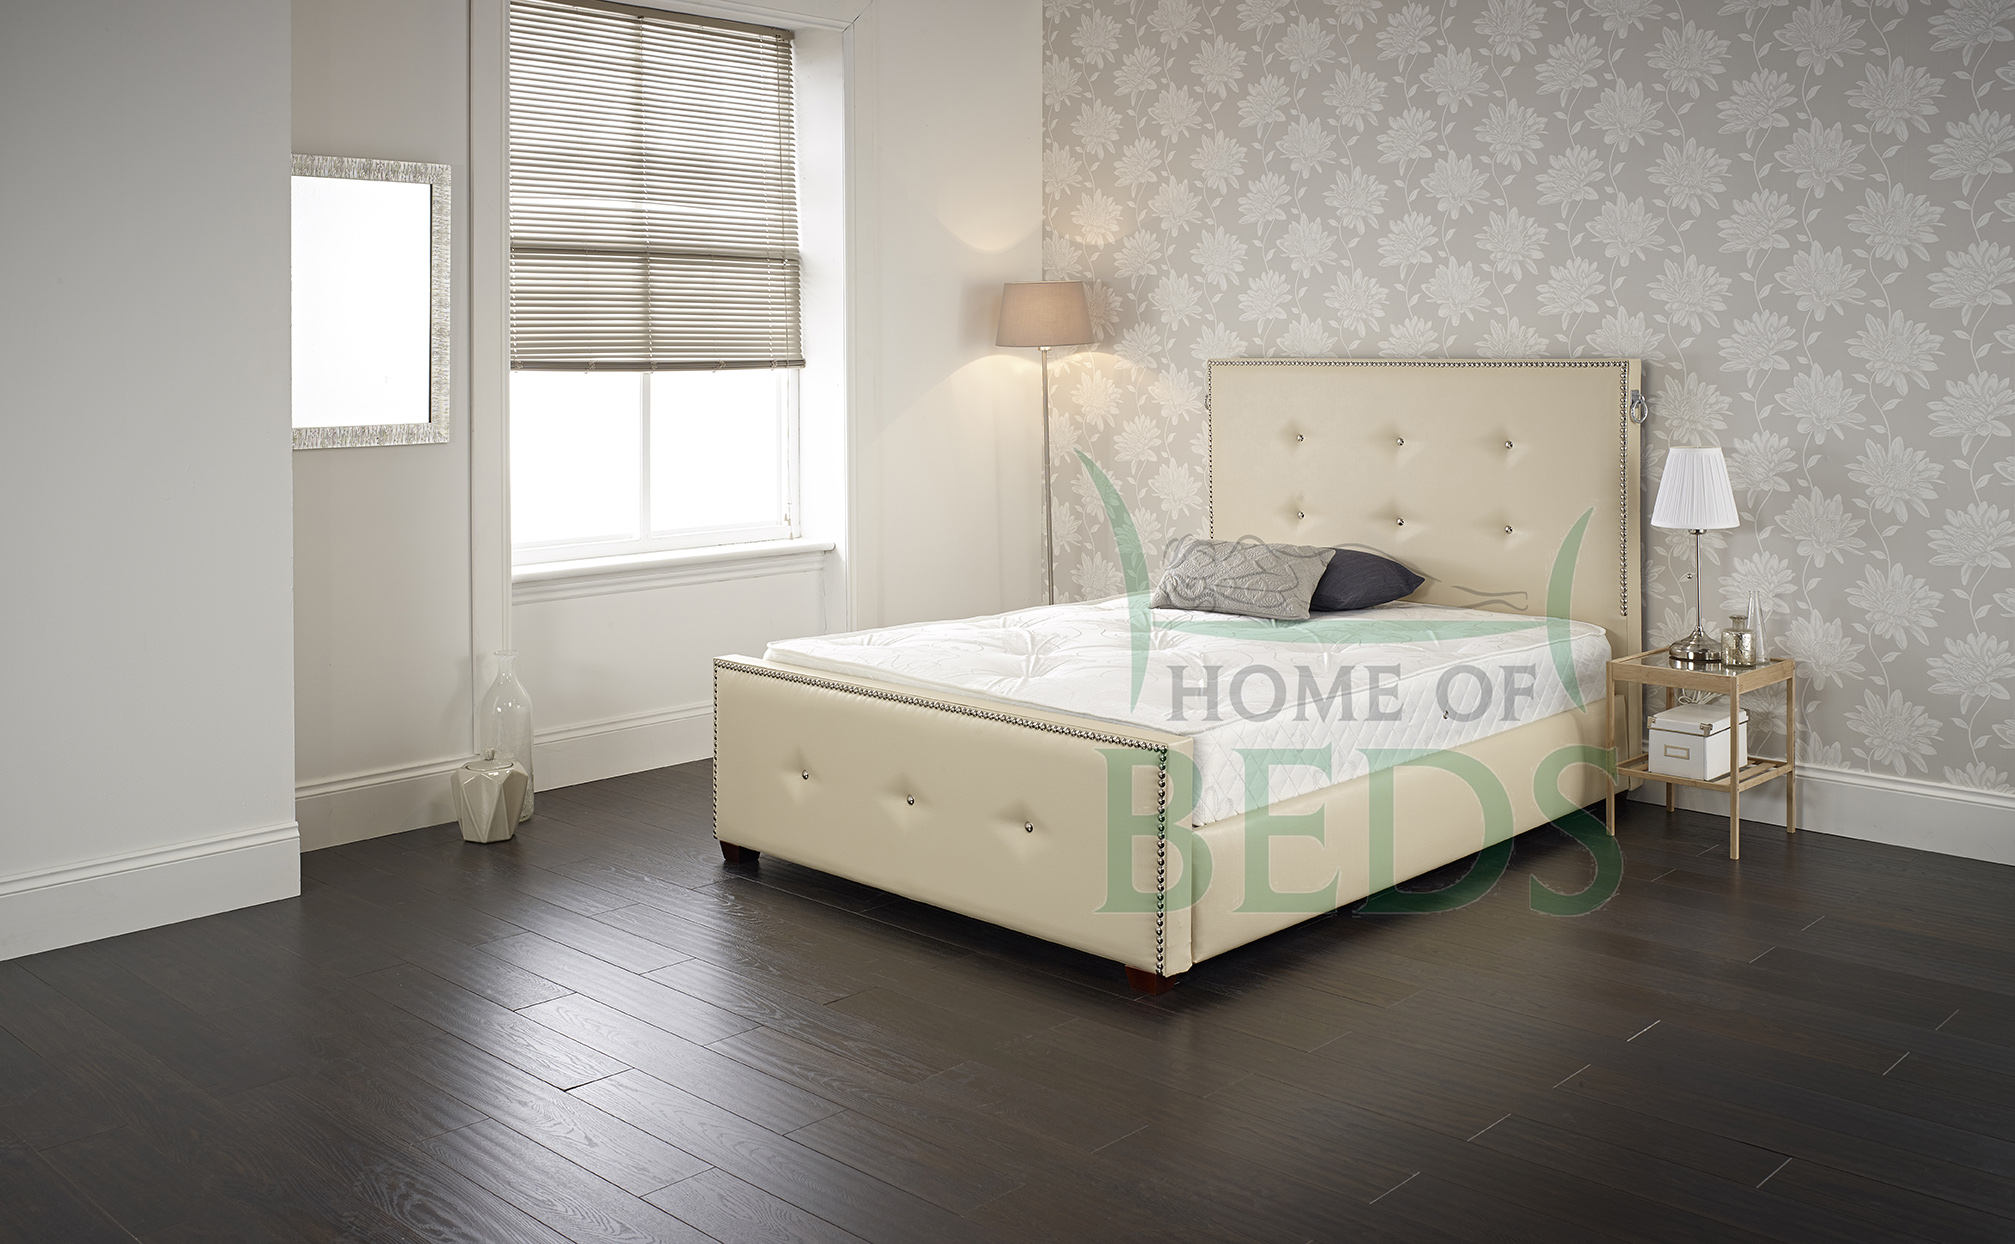 Home Of Beds Temptation Super Kingsize Bed Frame Sweet Dream Makers